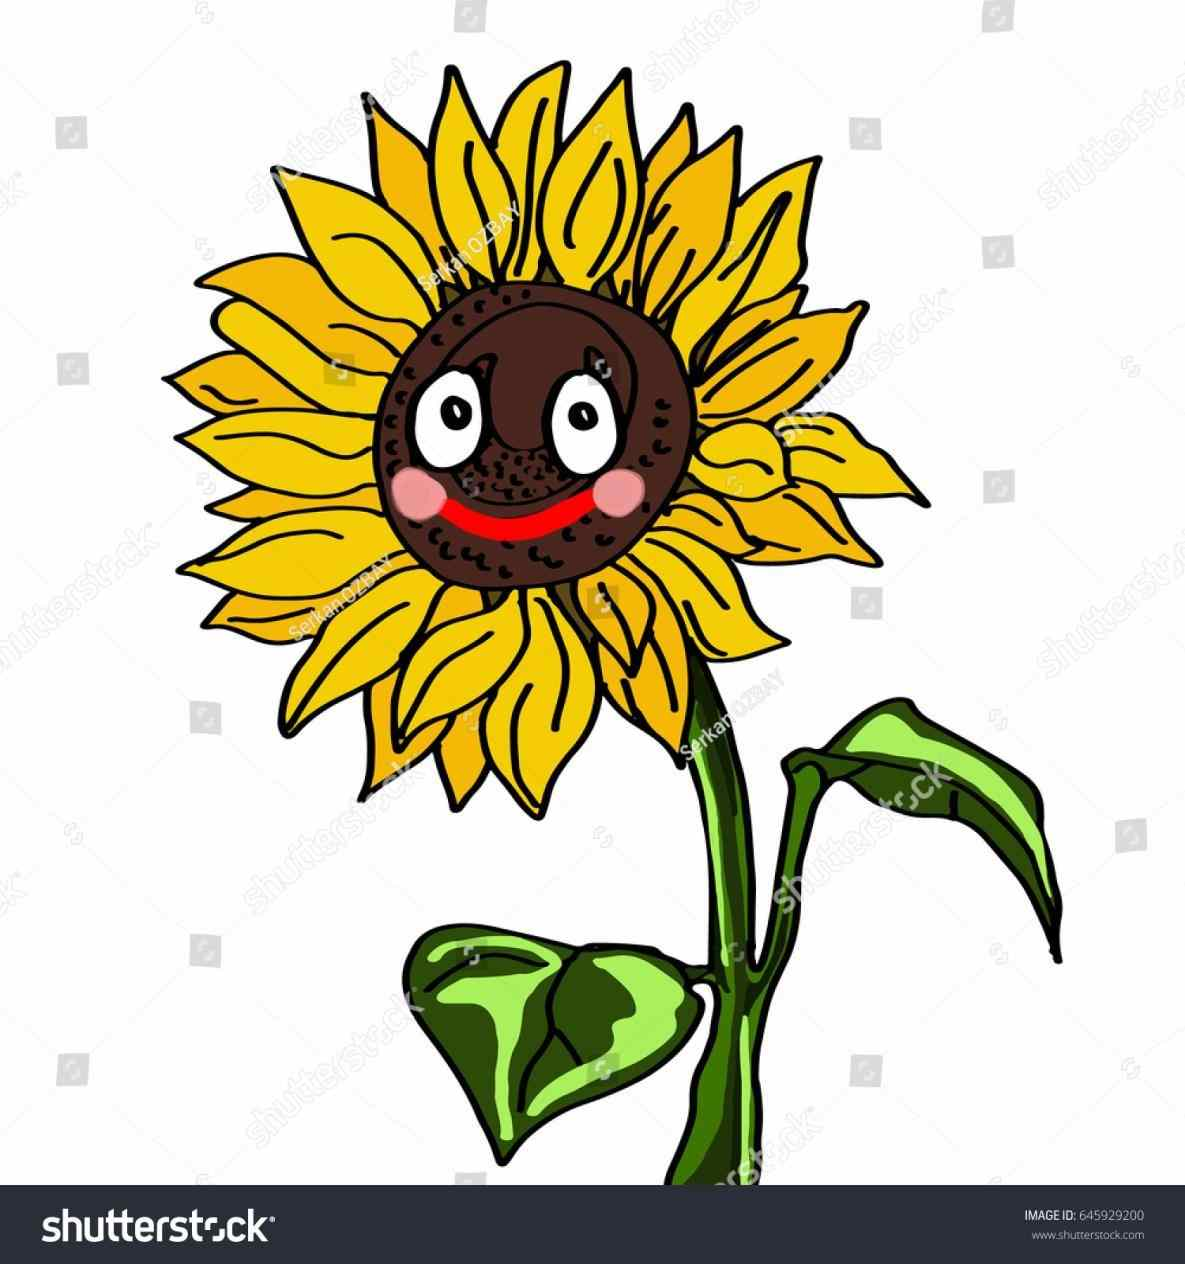 1185x1264 Png Image Library Png Cute Sunflowers Clipart Image Clip Art